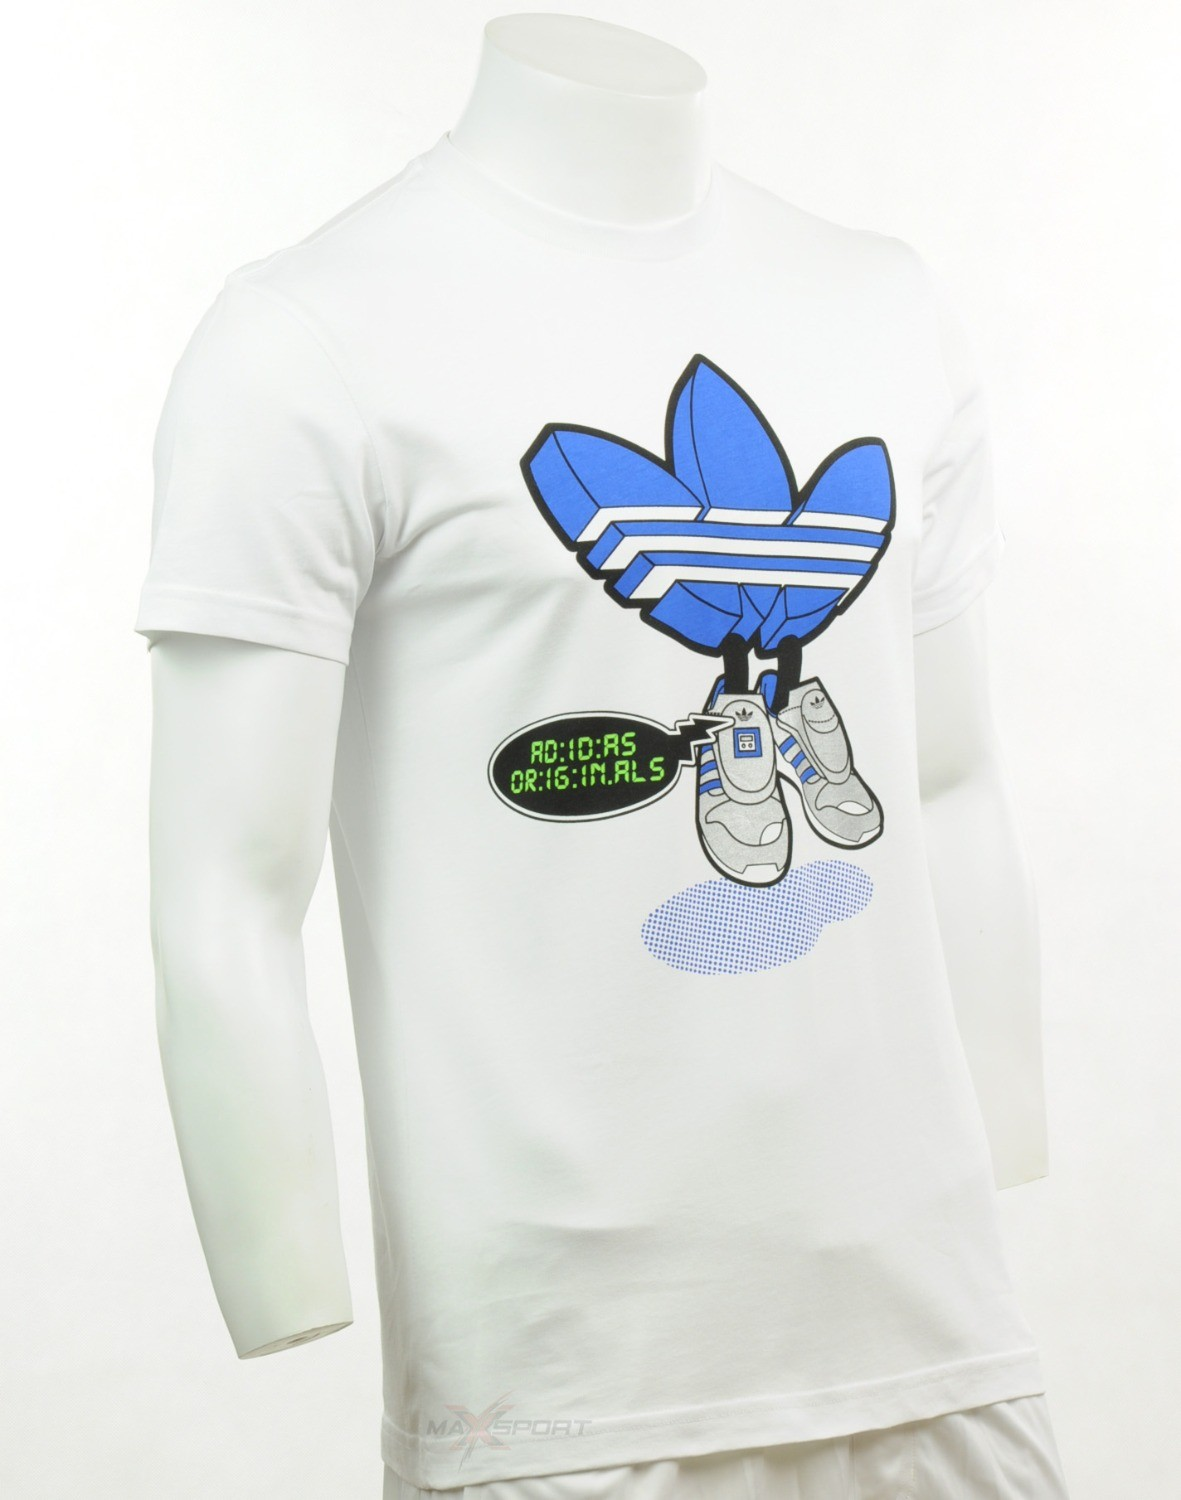 Adidas Originals Homber G Micropacer Tees Trefoil W67324 Summer Mens Tees